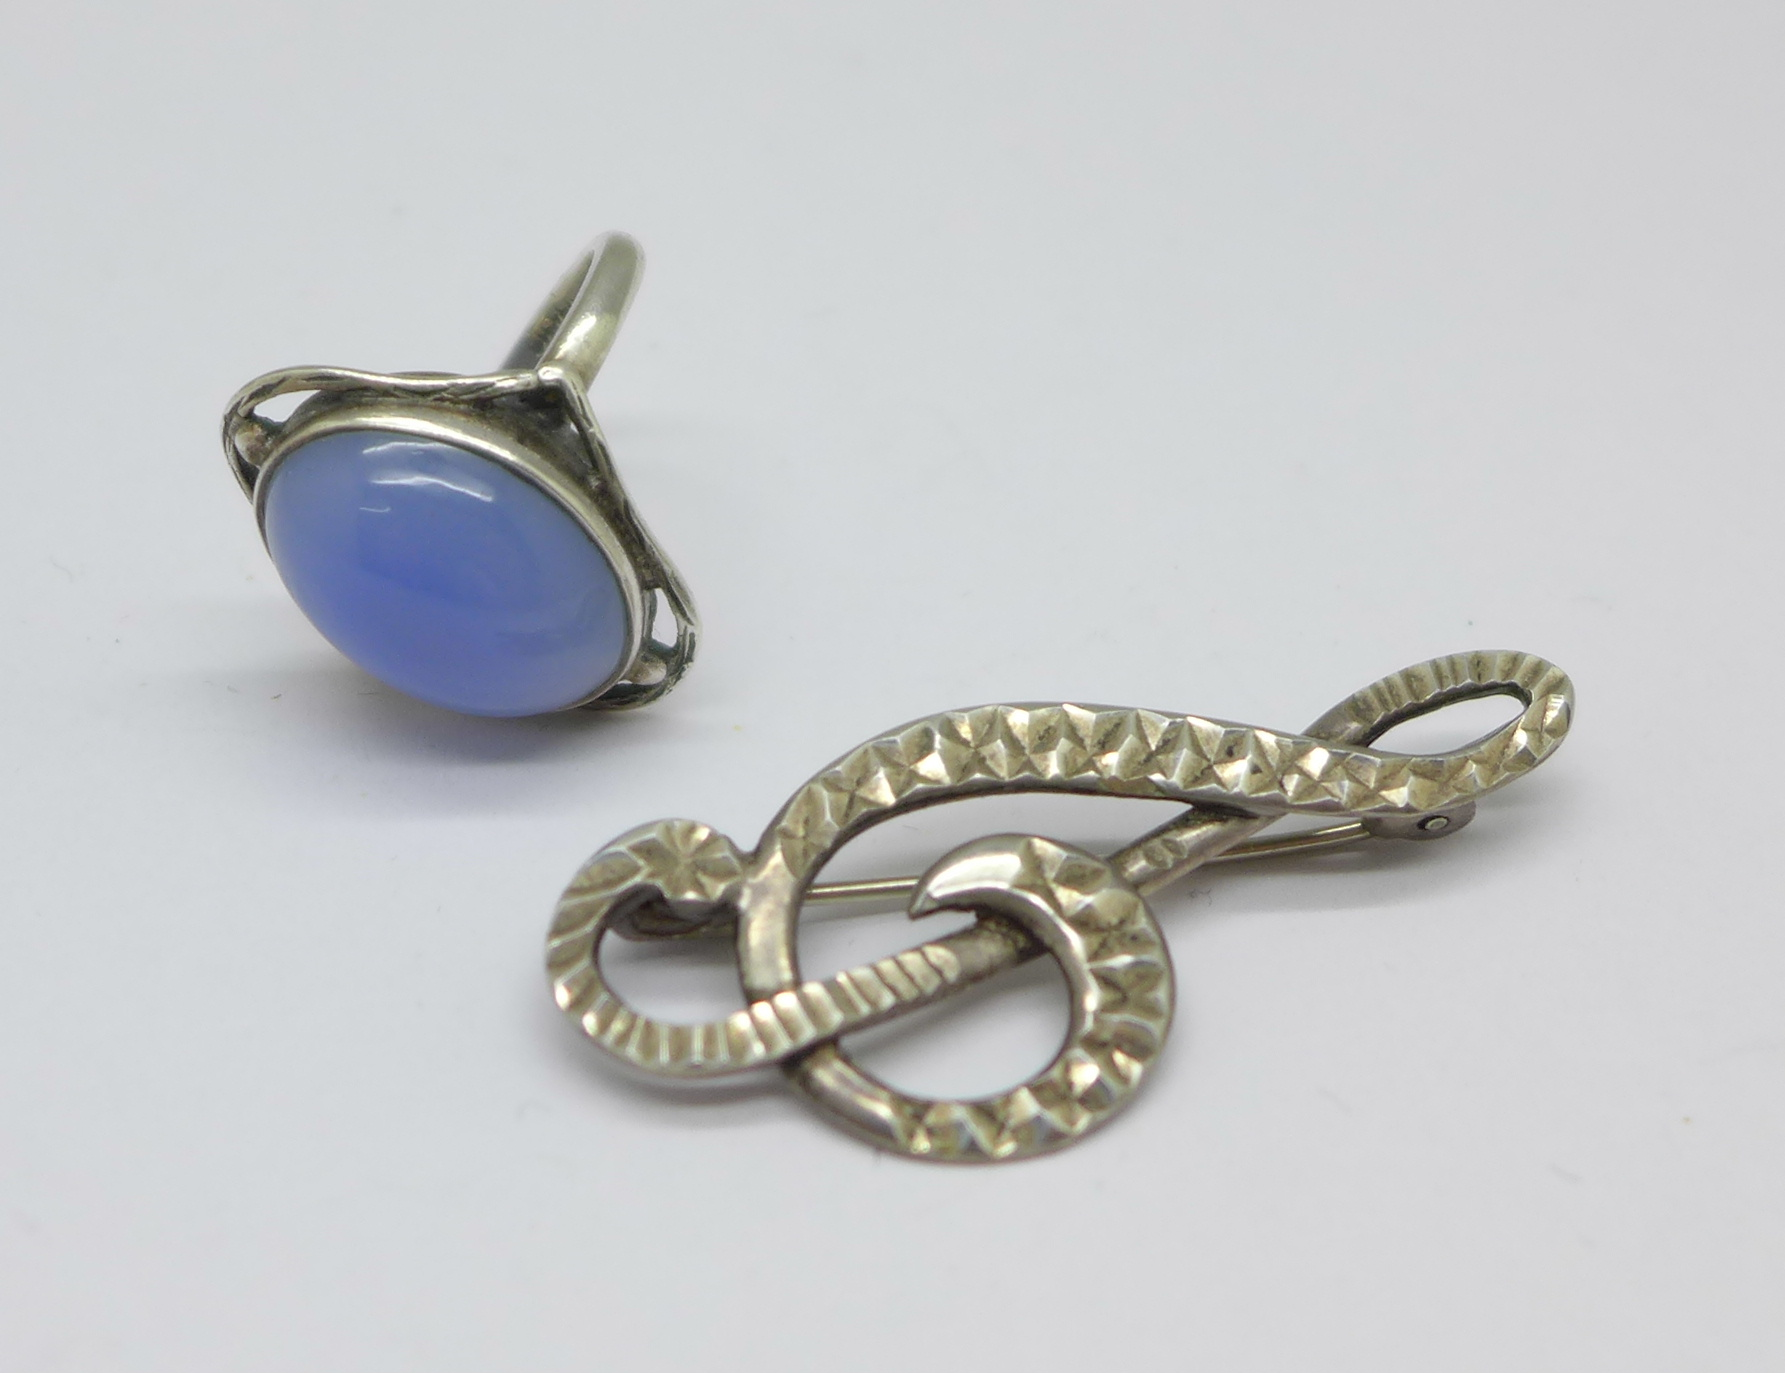 An Arts & Crafts silver ring set with chalcedony, L, and a treble clef brooch marked silver